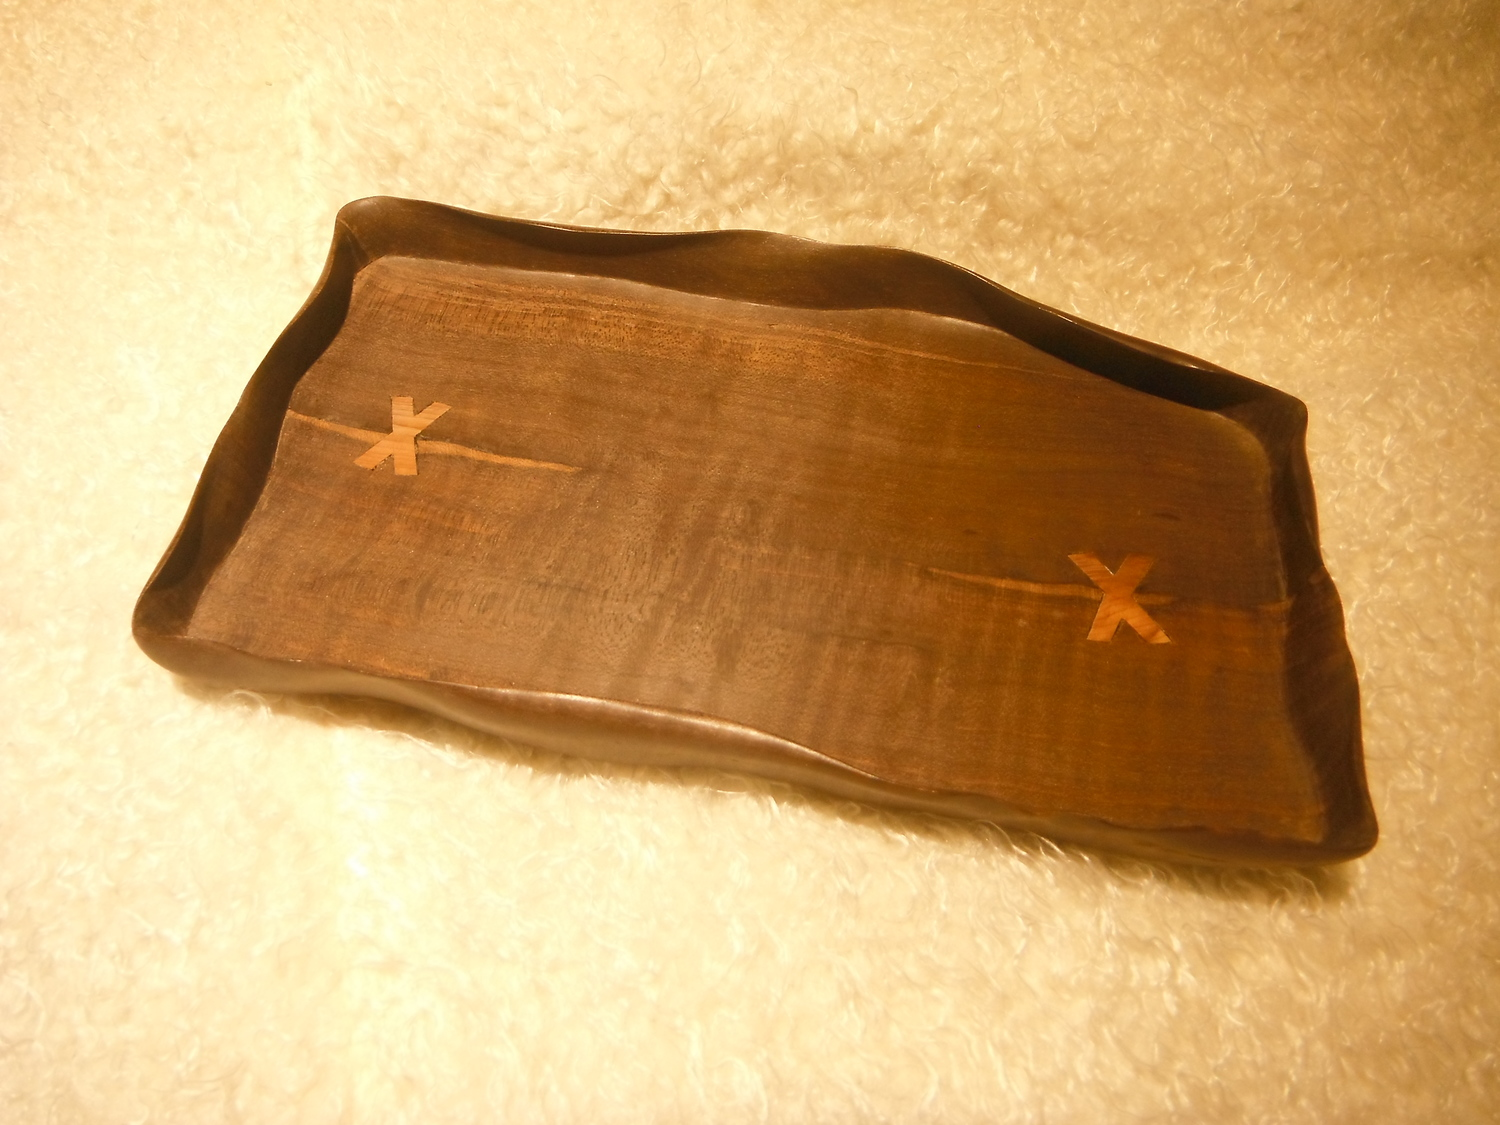 Liaochun Hand-Carved Wooden Tray (long)